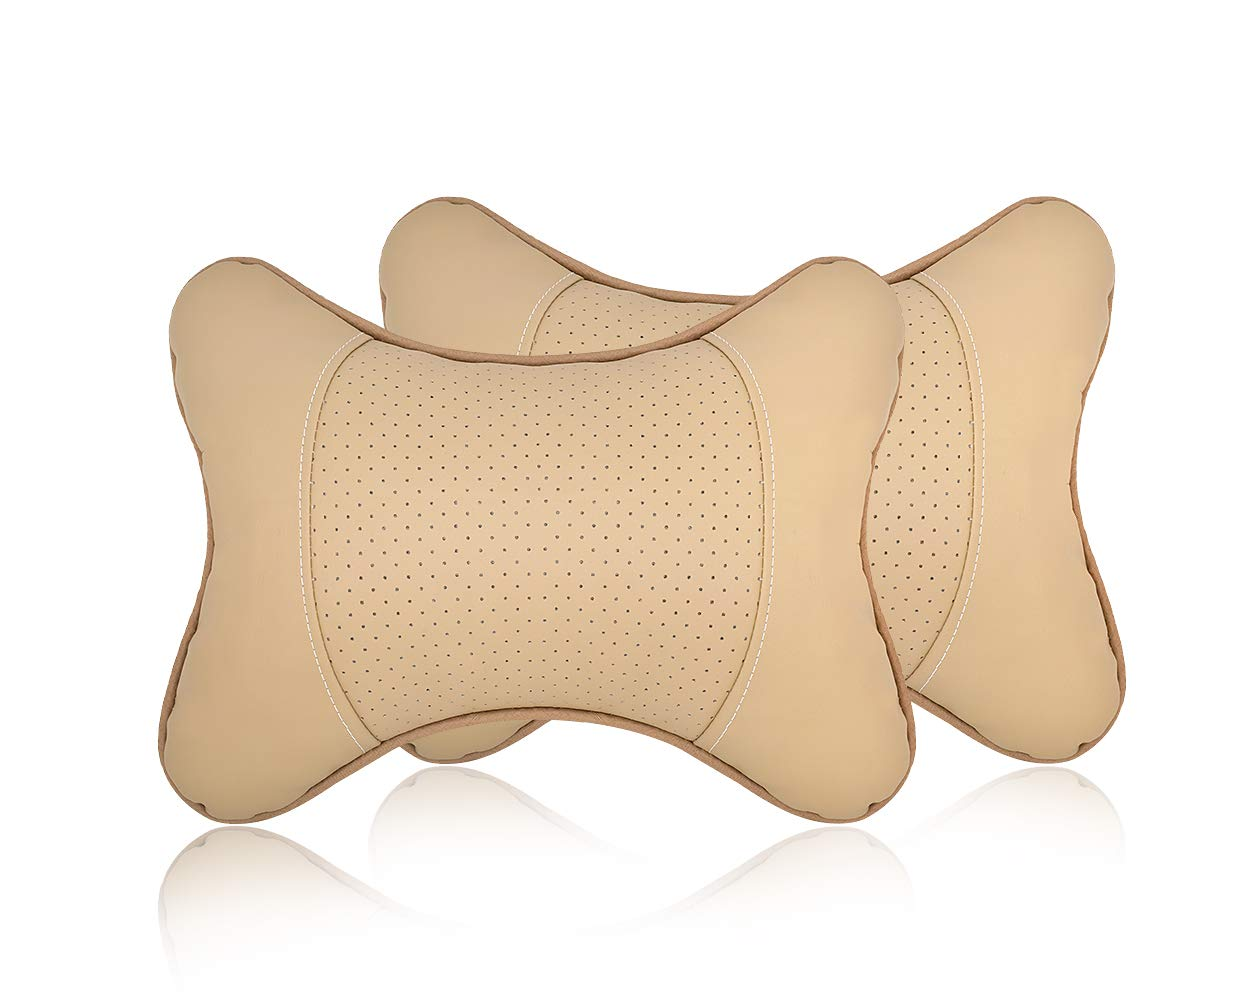 SCSpecial 2 Pieces Car Headrest Cushion PU Leather Neck Pillow for Car Seat Headrest Cushion 28x18cm Car Neck Cushion (Beige)